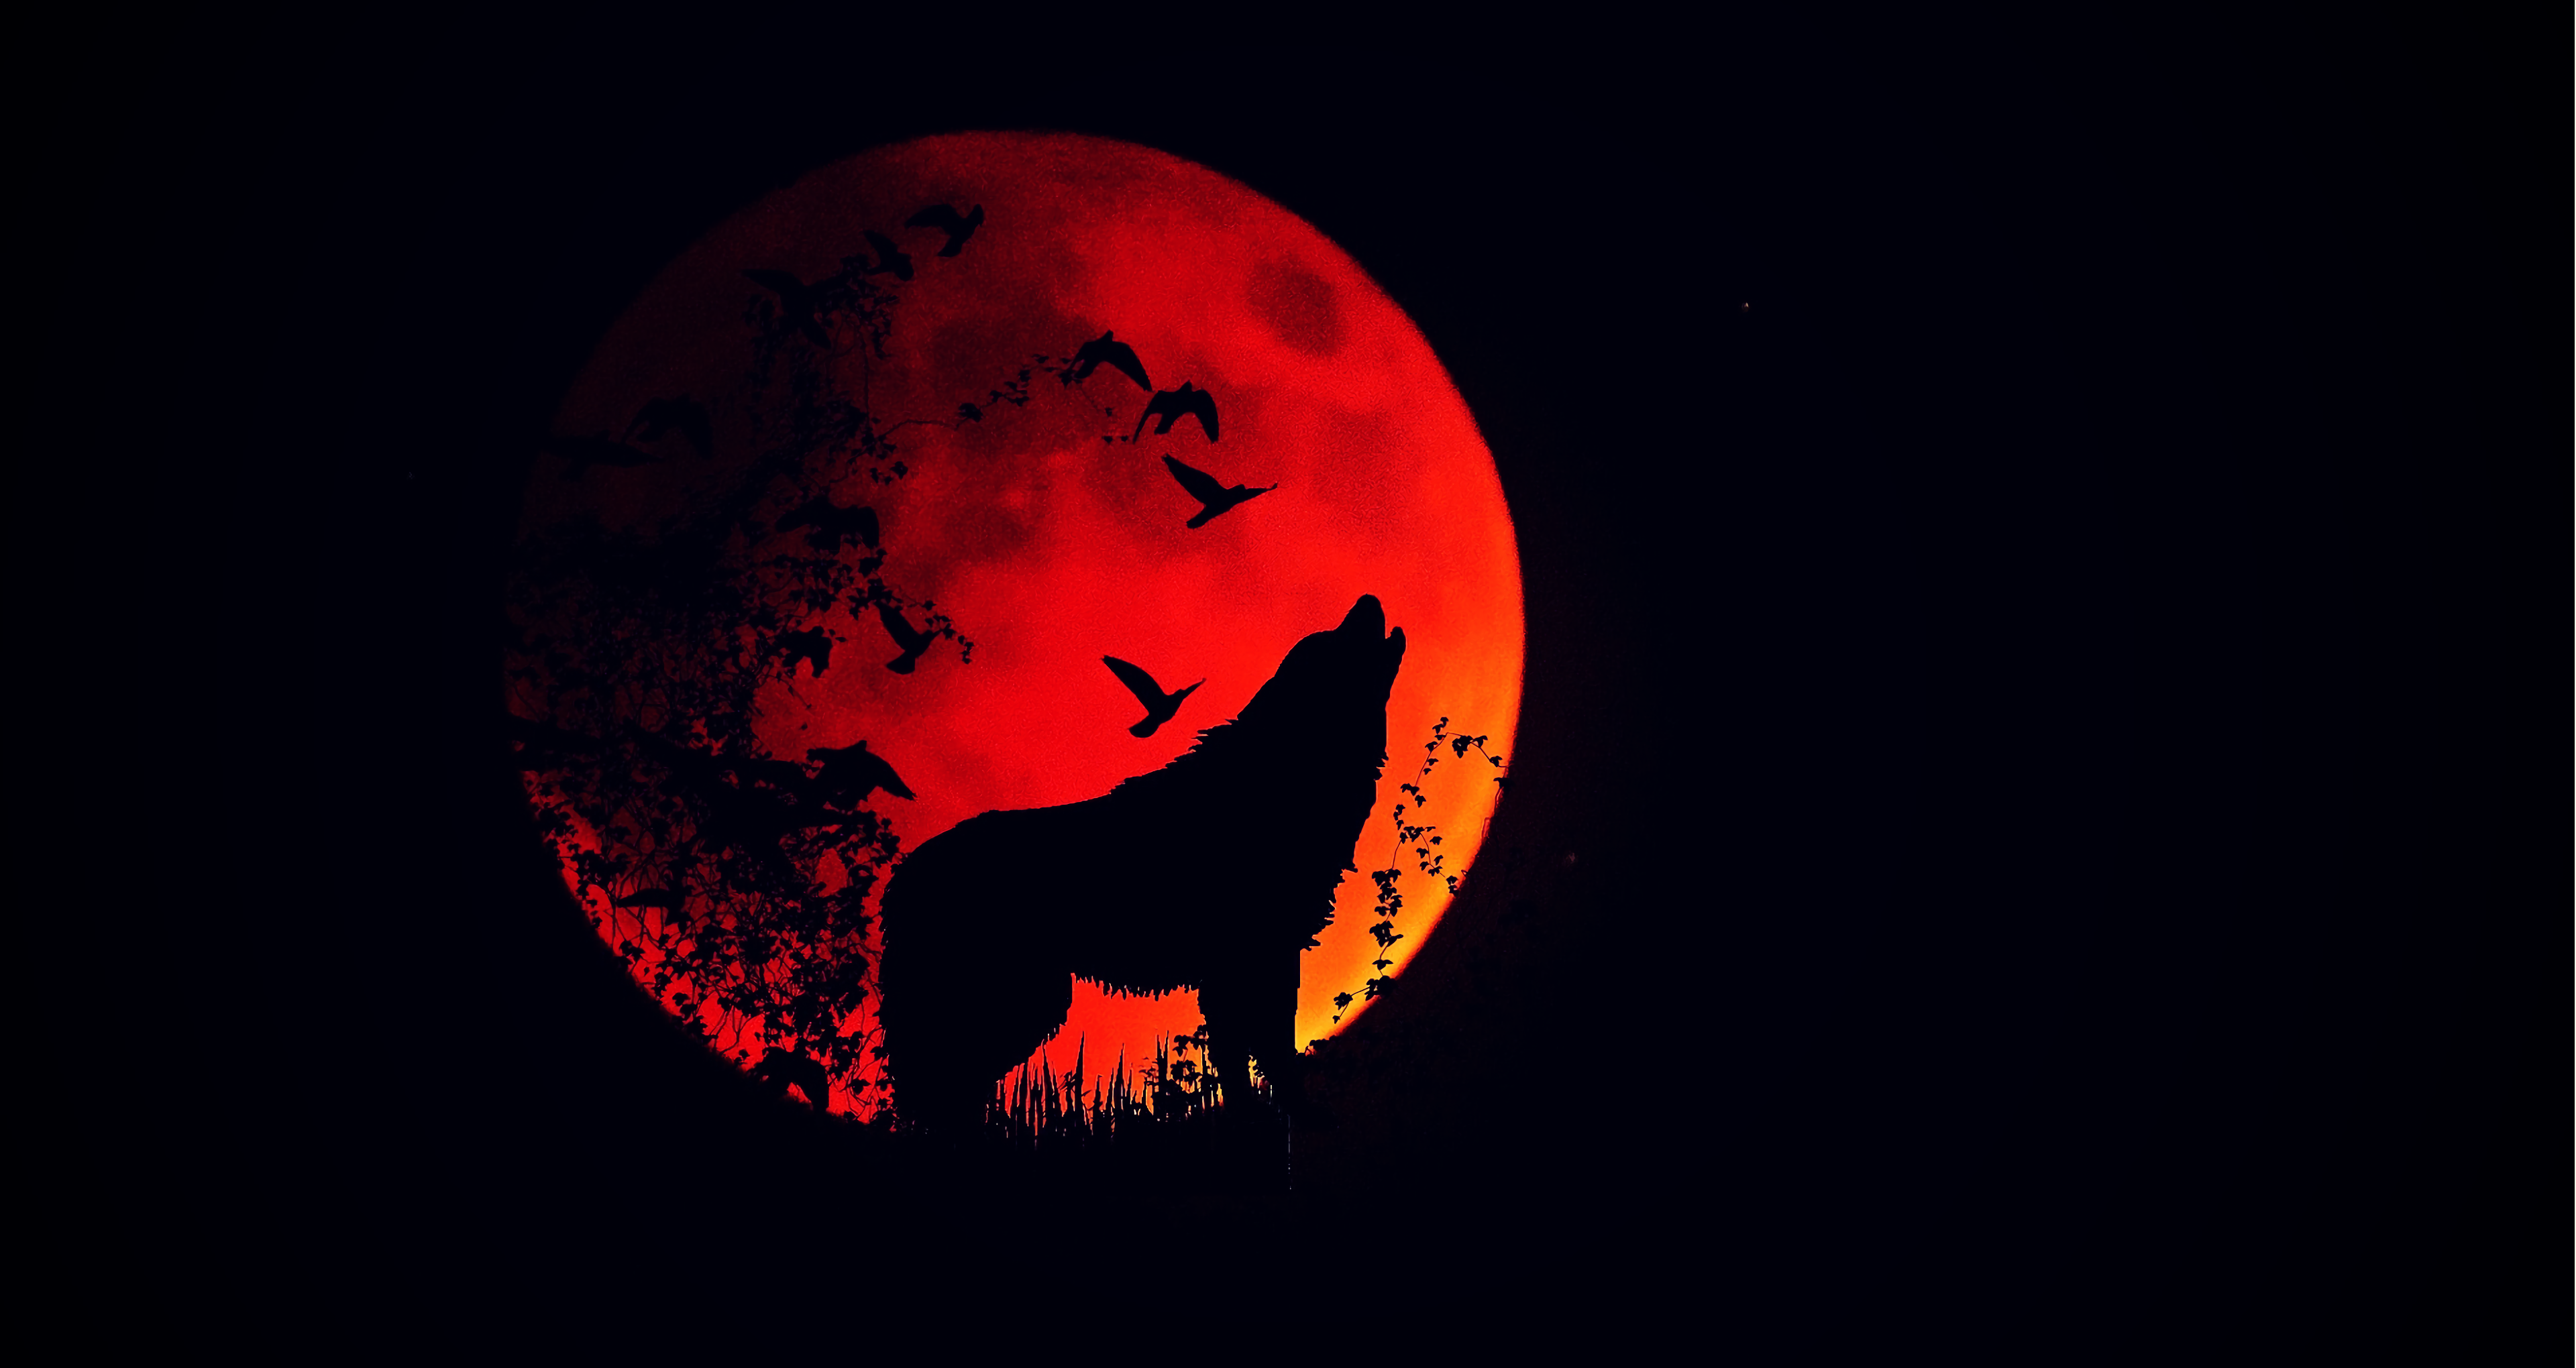 wolf howl silhouette